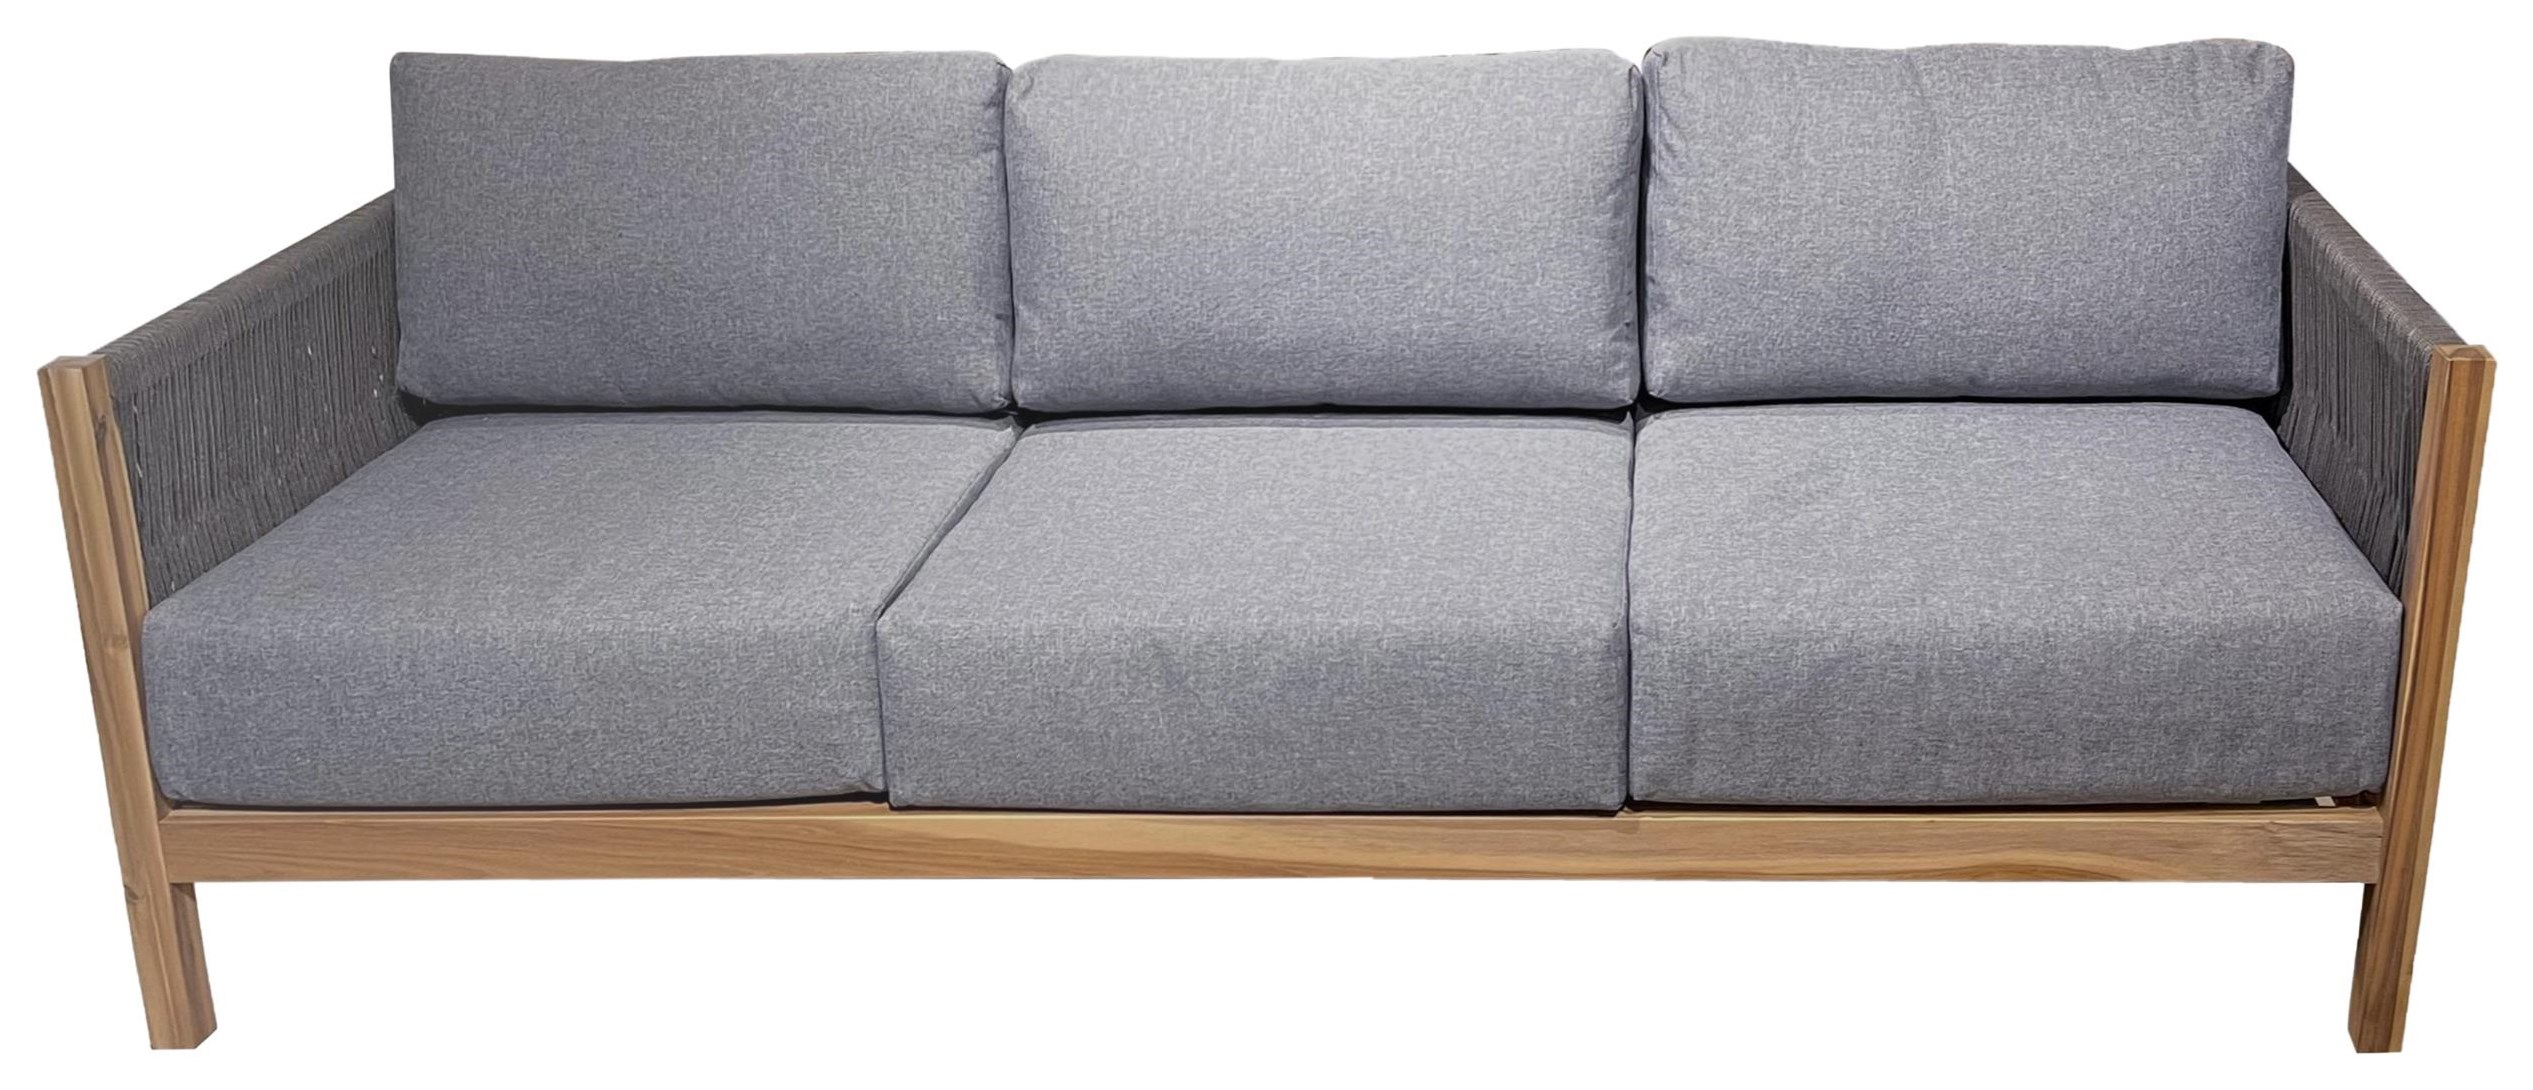 Sienna Sofa by Design Evolution at Red Knot